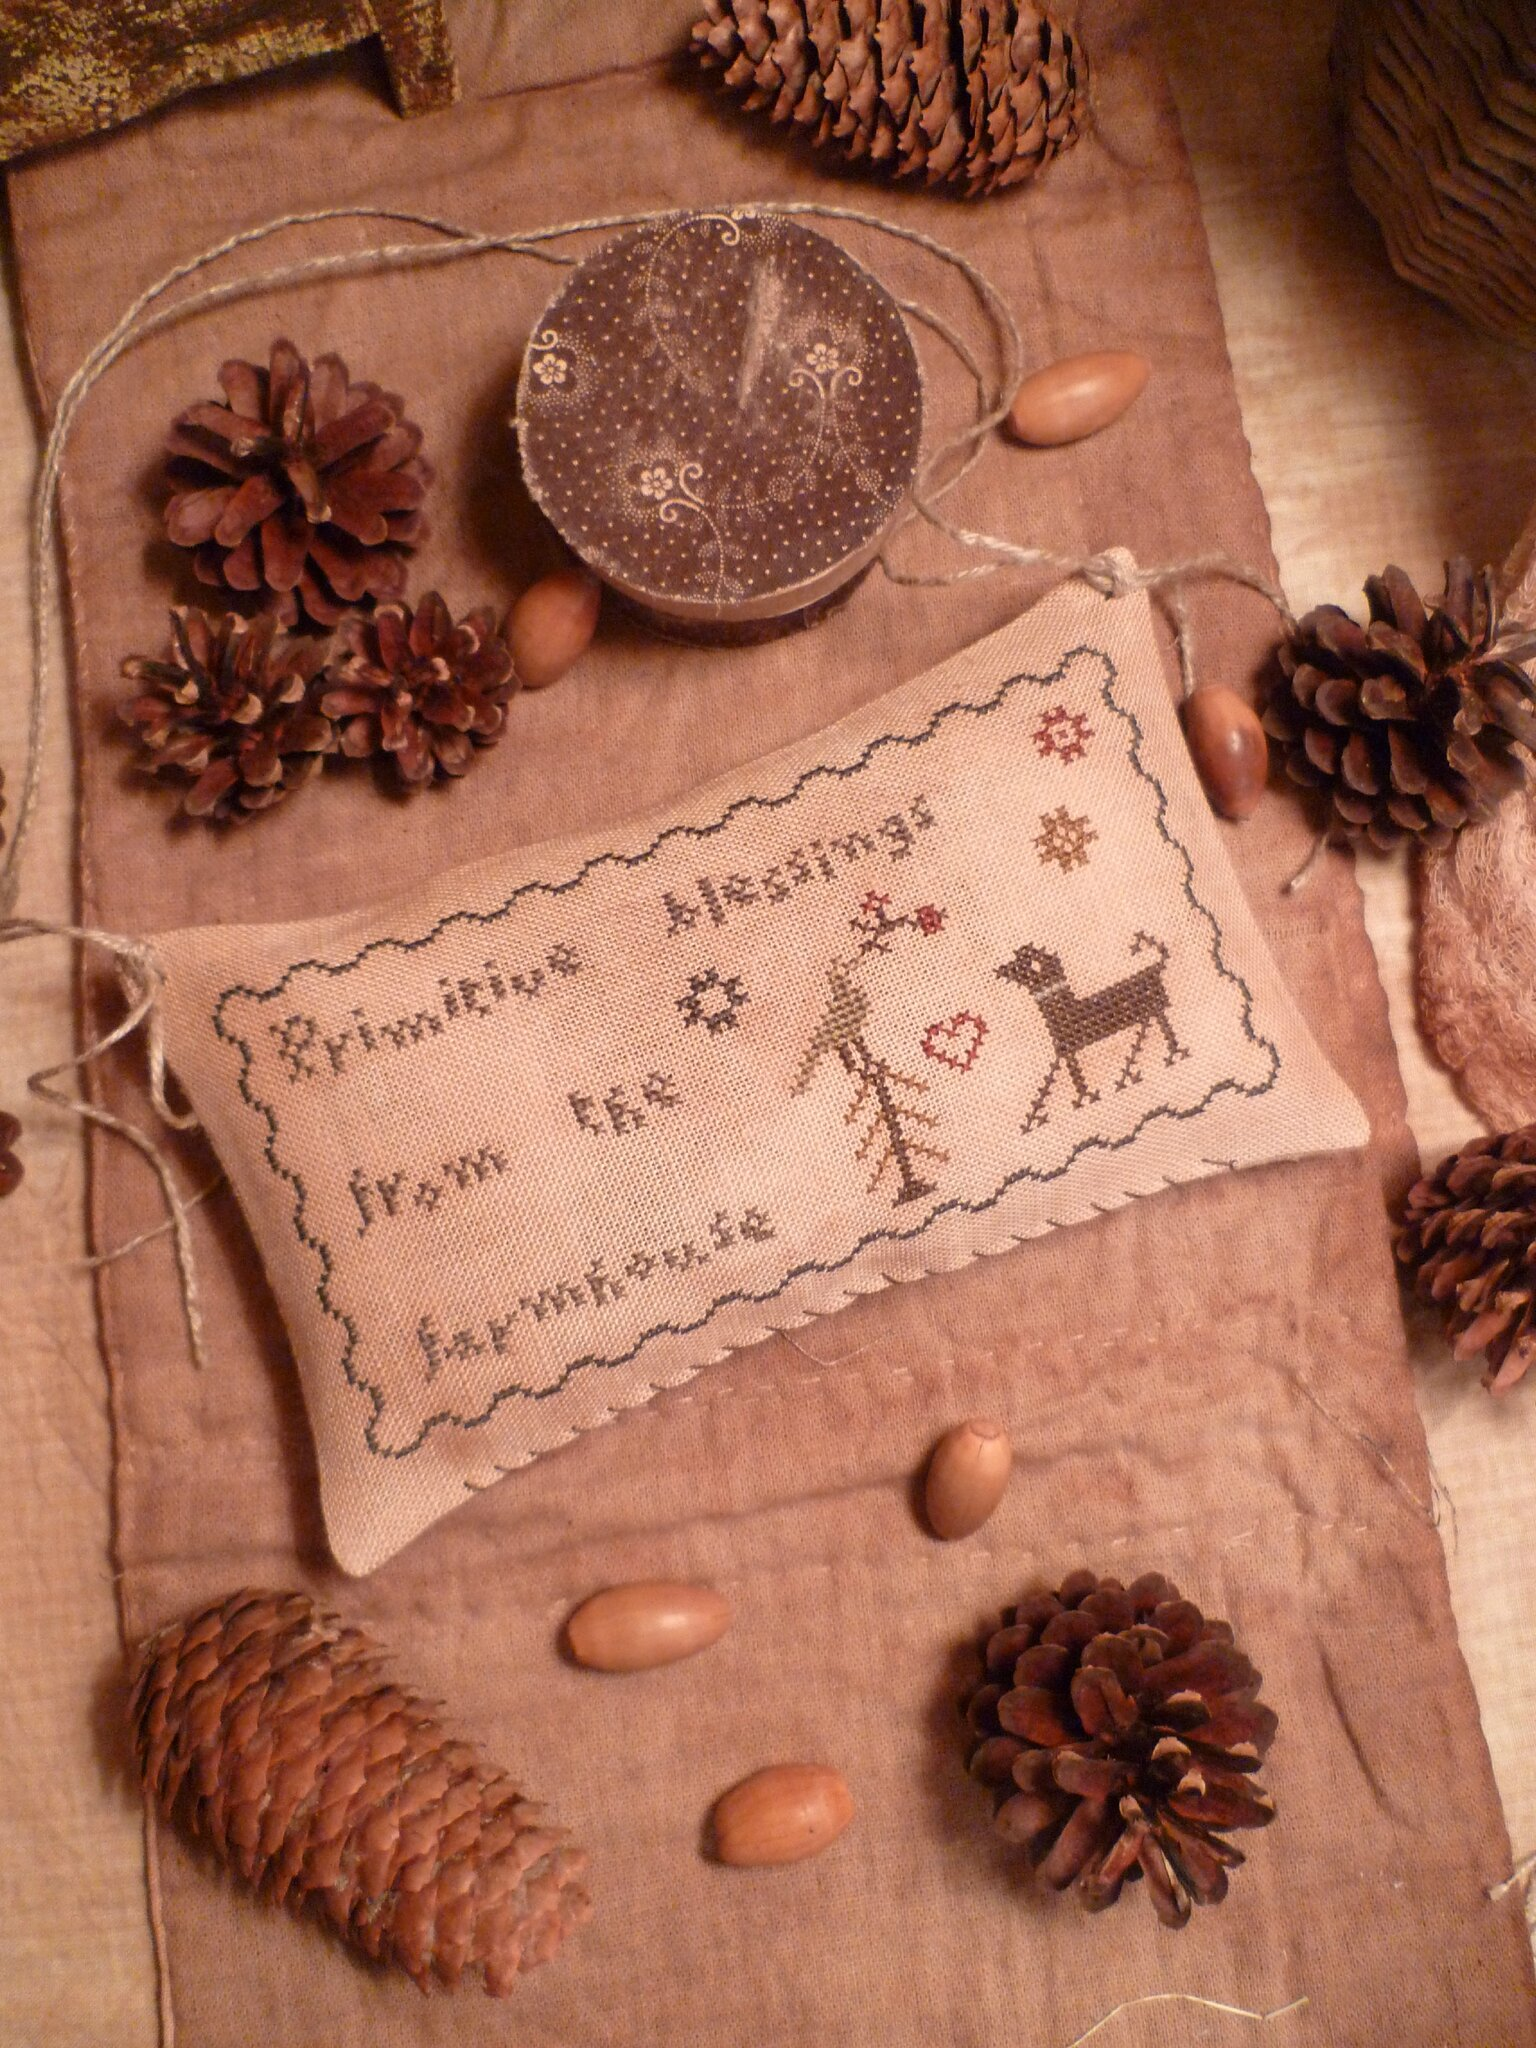 Primitive Blessings from the farmhouse US$ 7.00